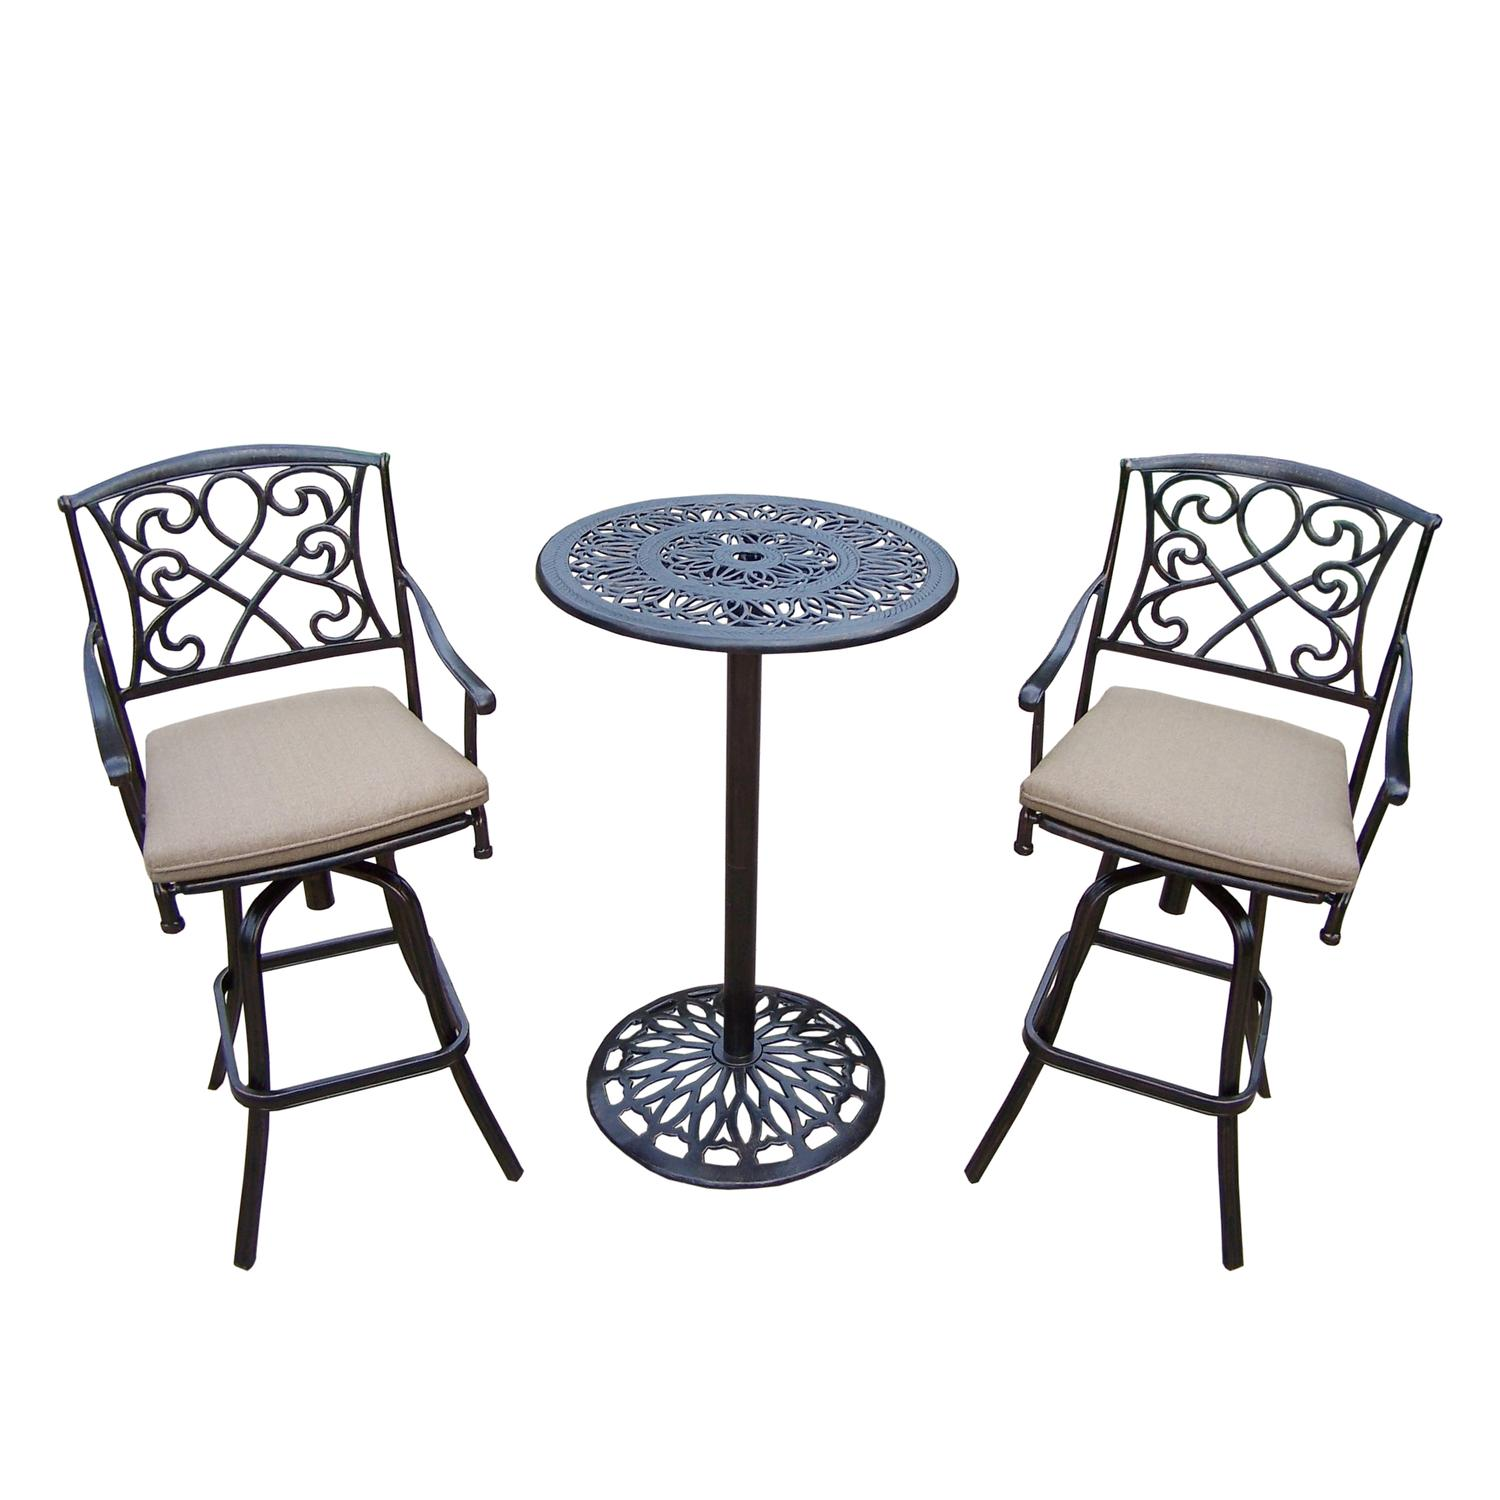 44� 3 Pc. Antiqued Bronze Colored Outdoor Patio Bar Set with Cushions by CC Outdoor Living